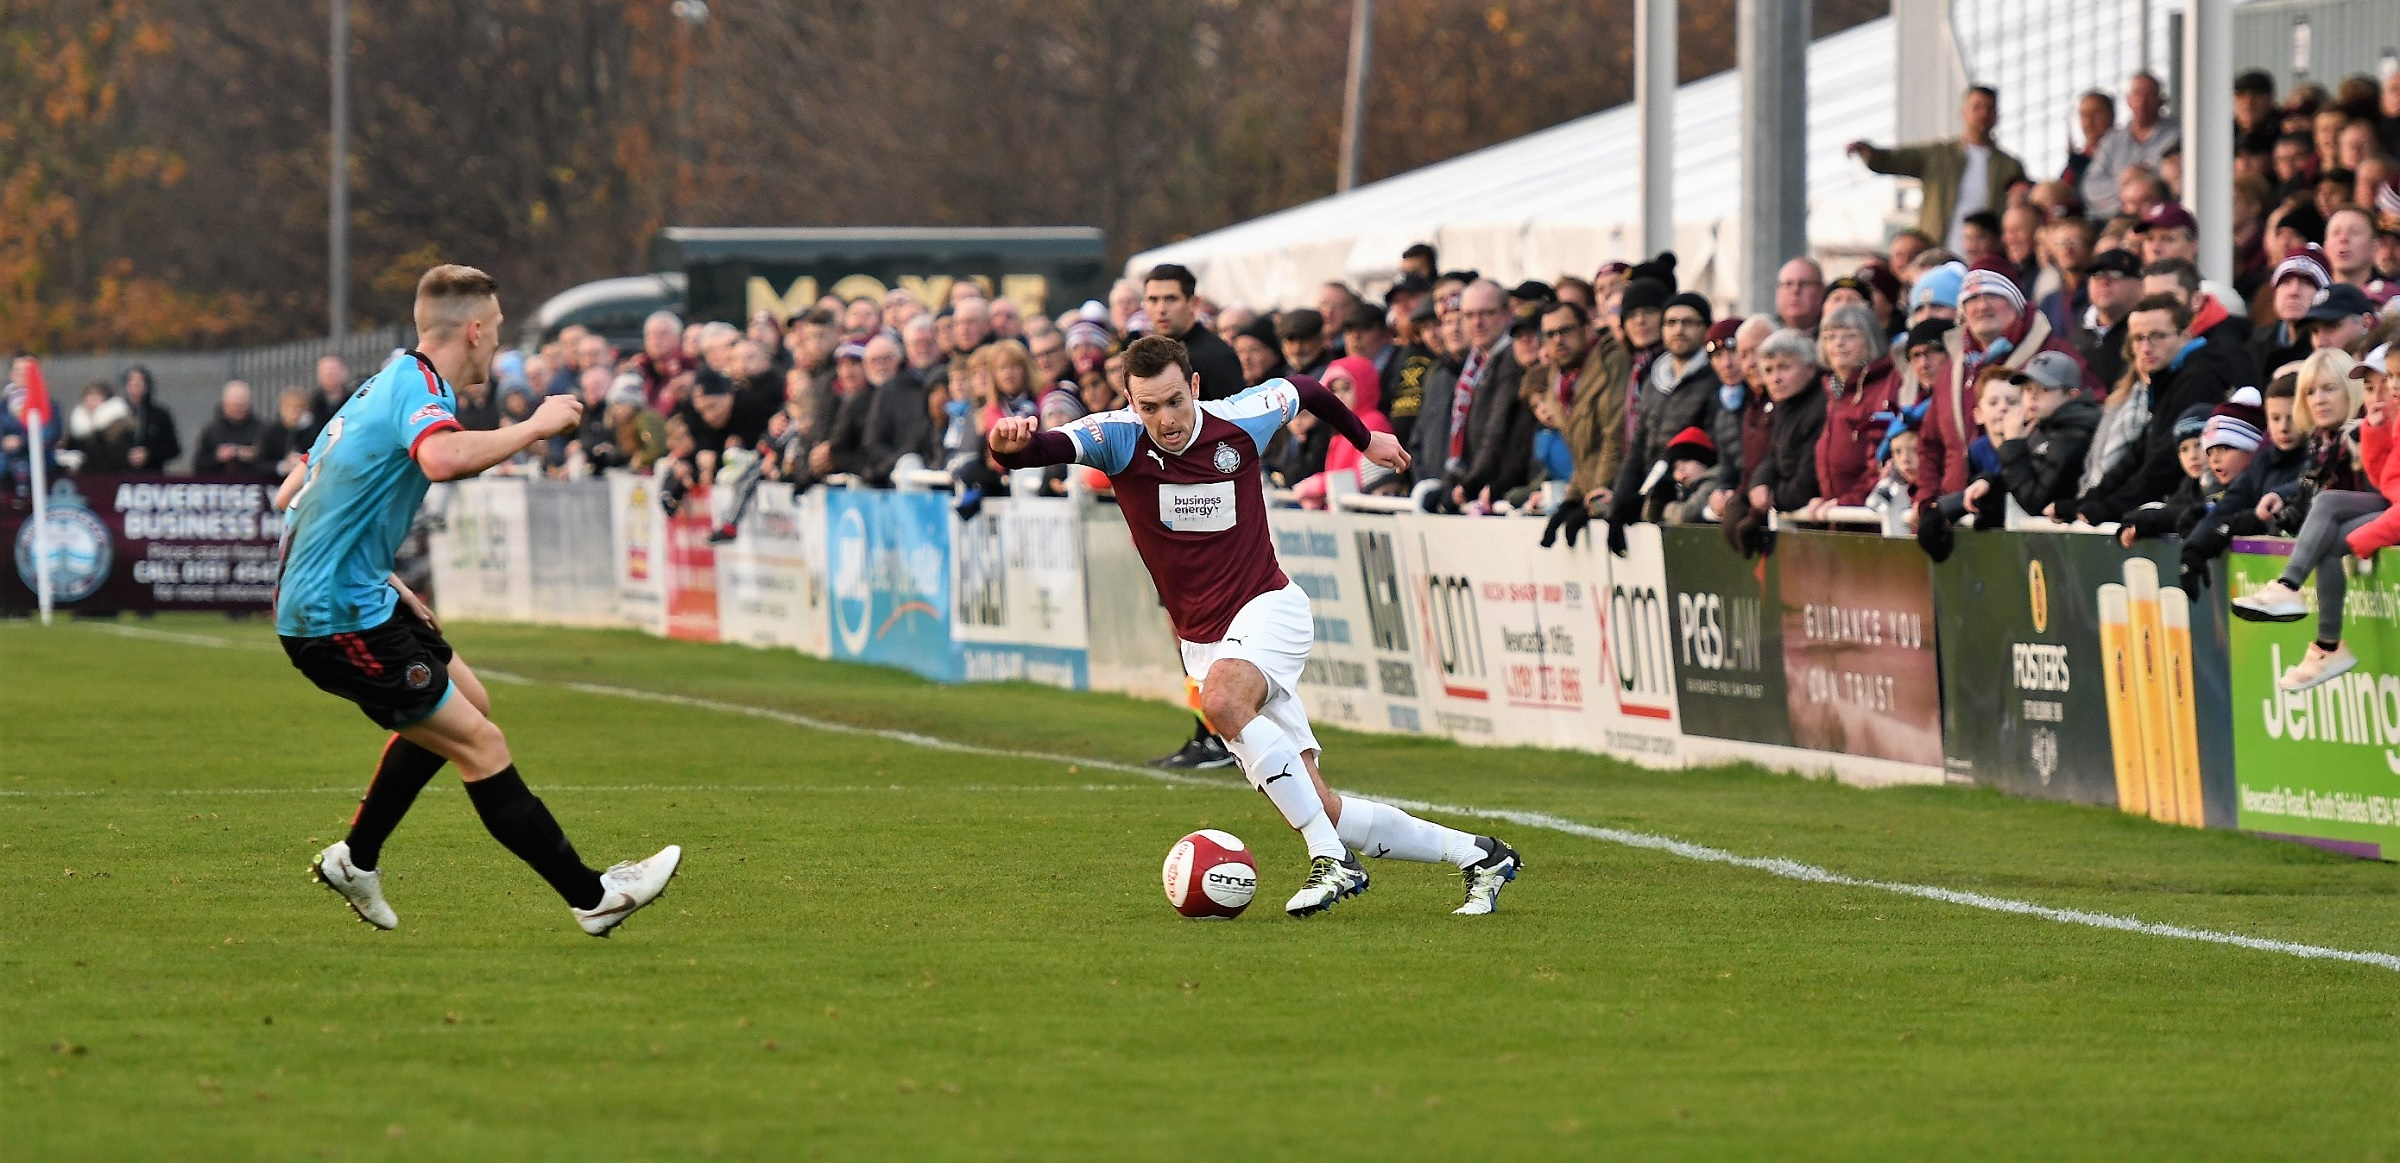 Match Preview: Stratford Town vs South Shields, Buildbase FA Trophy